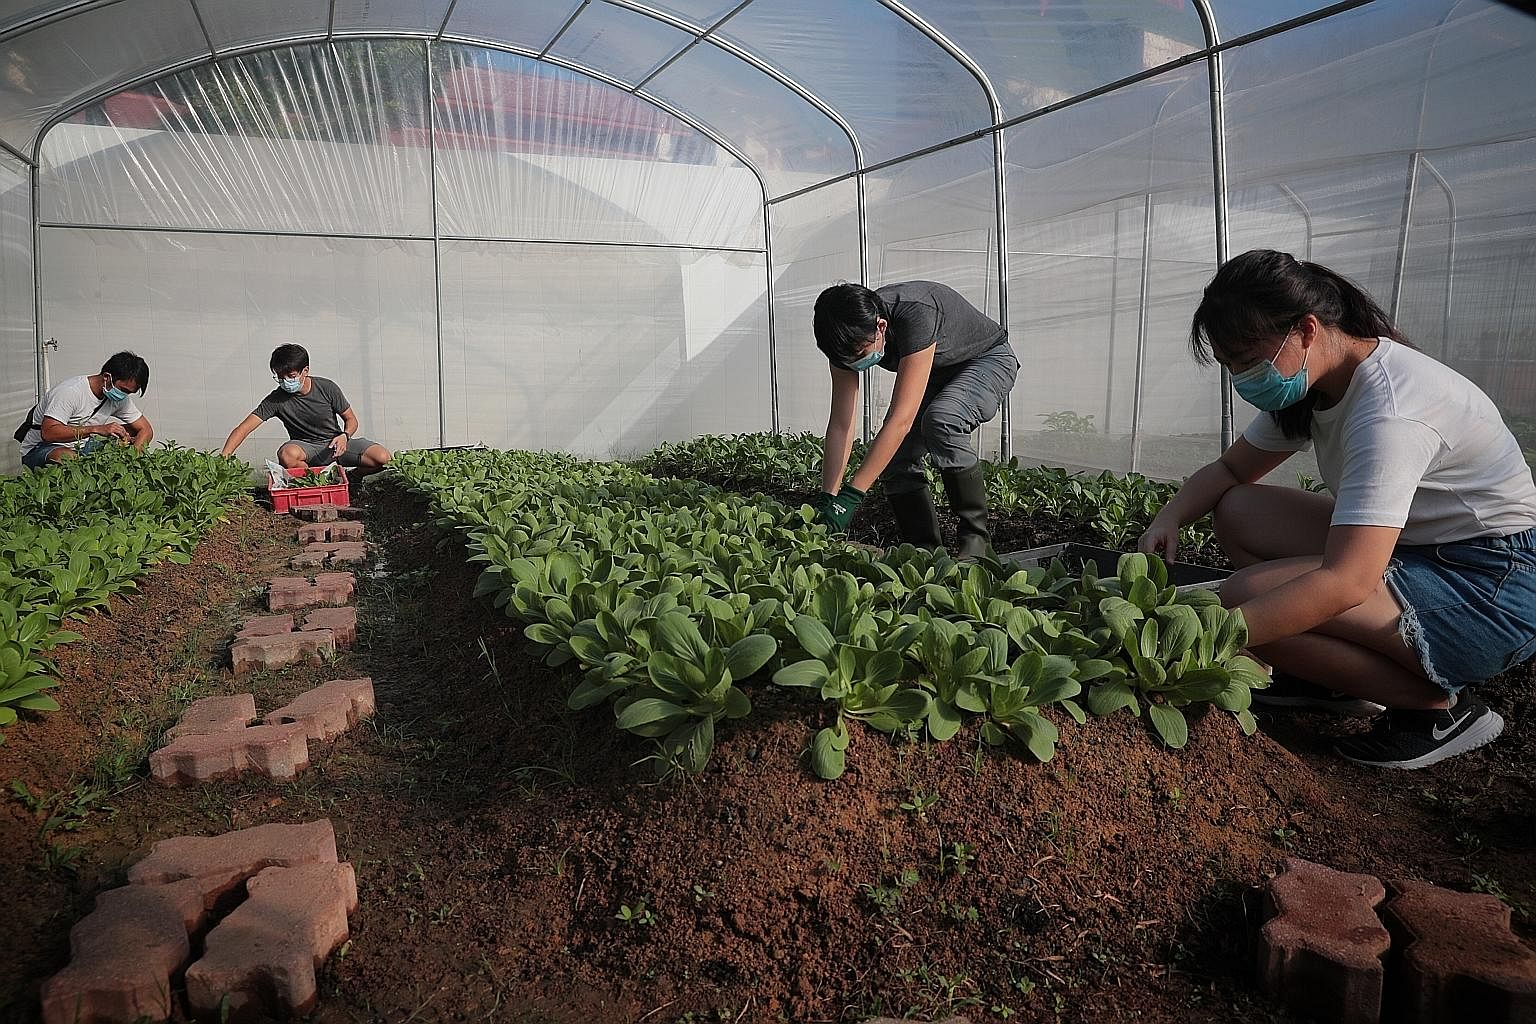 (From far left) Social enterprise City Sprouts co-founders Zac Toh, 28, and Chee Zhi Kin, 26, and their staff Tan Kor Hoon, 48, and Rachel Lee, 21, harvesting vegetables from their urban farm at the former site of Henderson Secondary School in the Bu